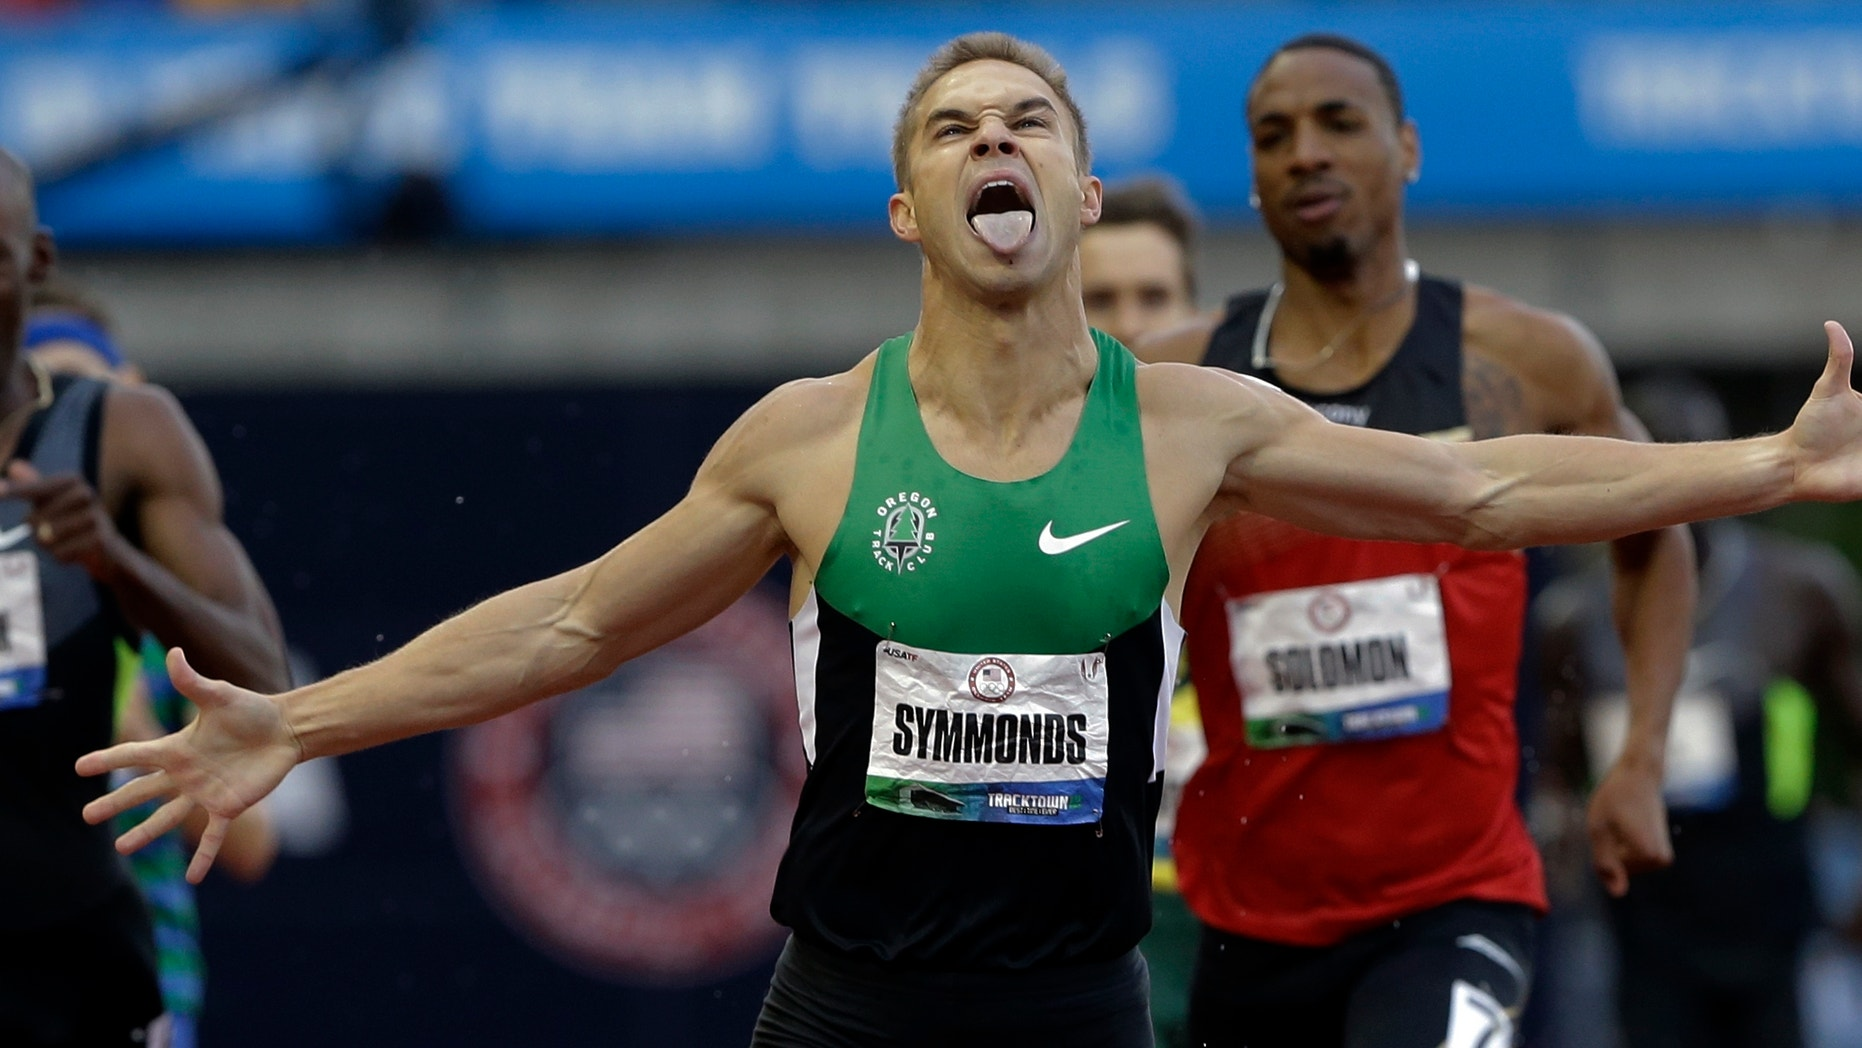 June 25, 2012: Nicholas Symmonds reacts after winning the men's 800m finals at the U.S. Olympic Track and Field Trials in Eugene, Ore